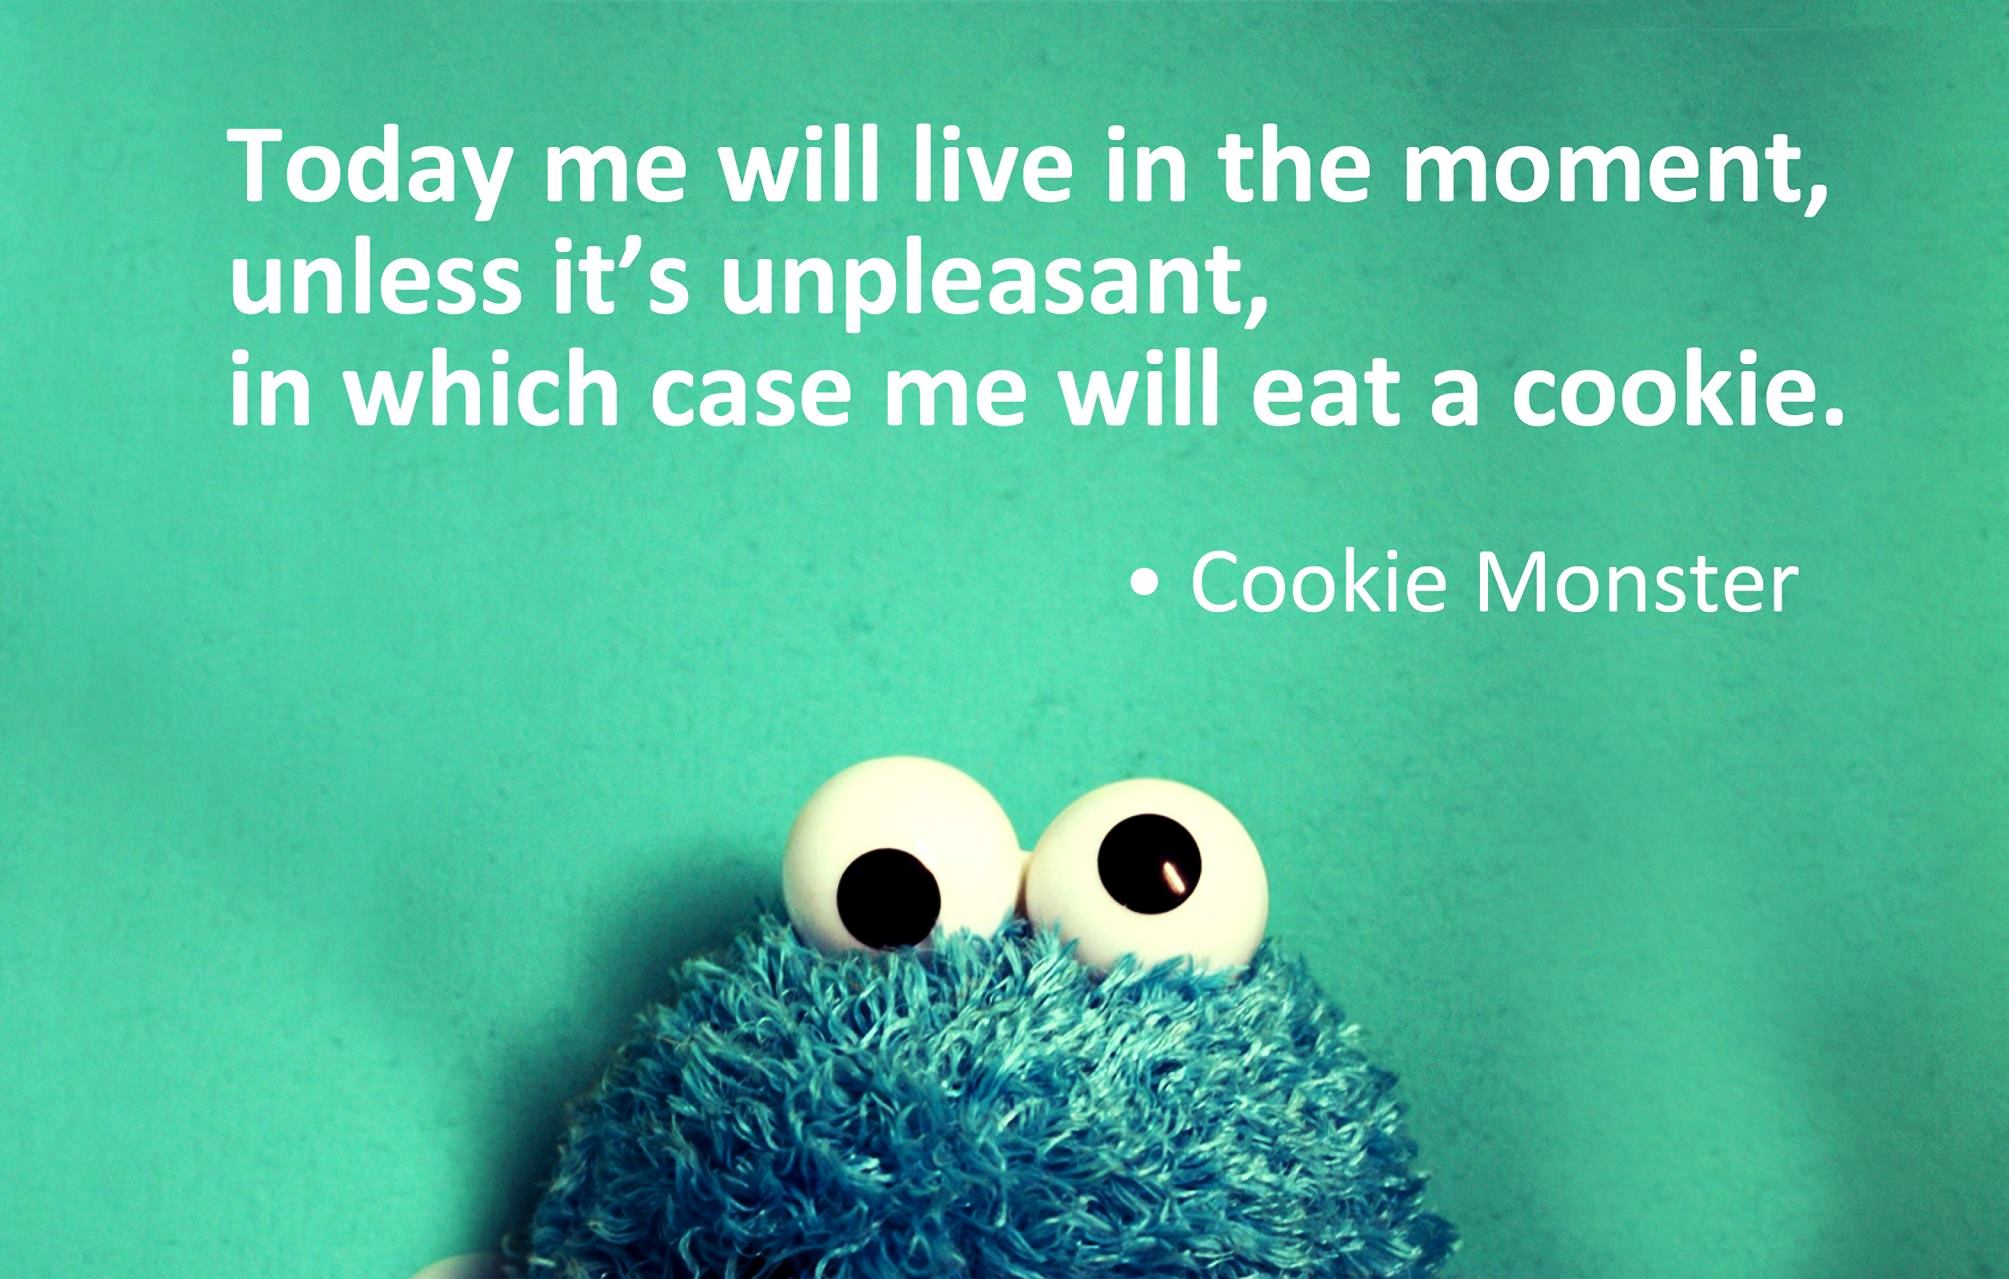 cookie monster quotes live in the moment images pictures